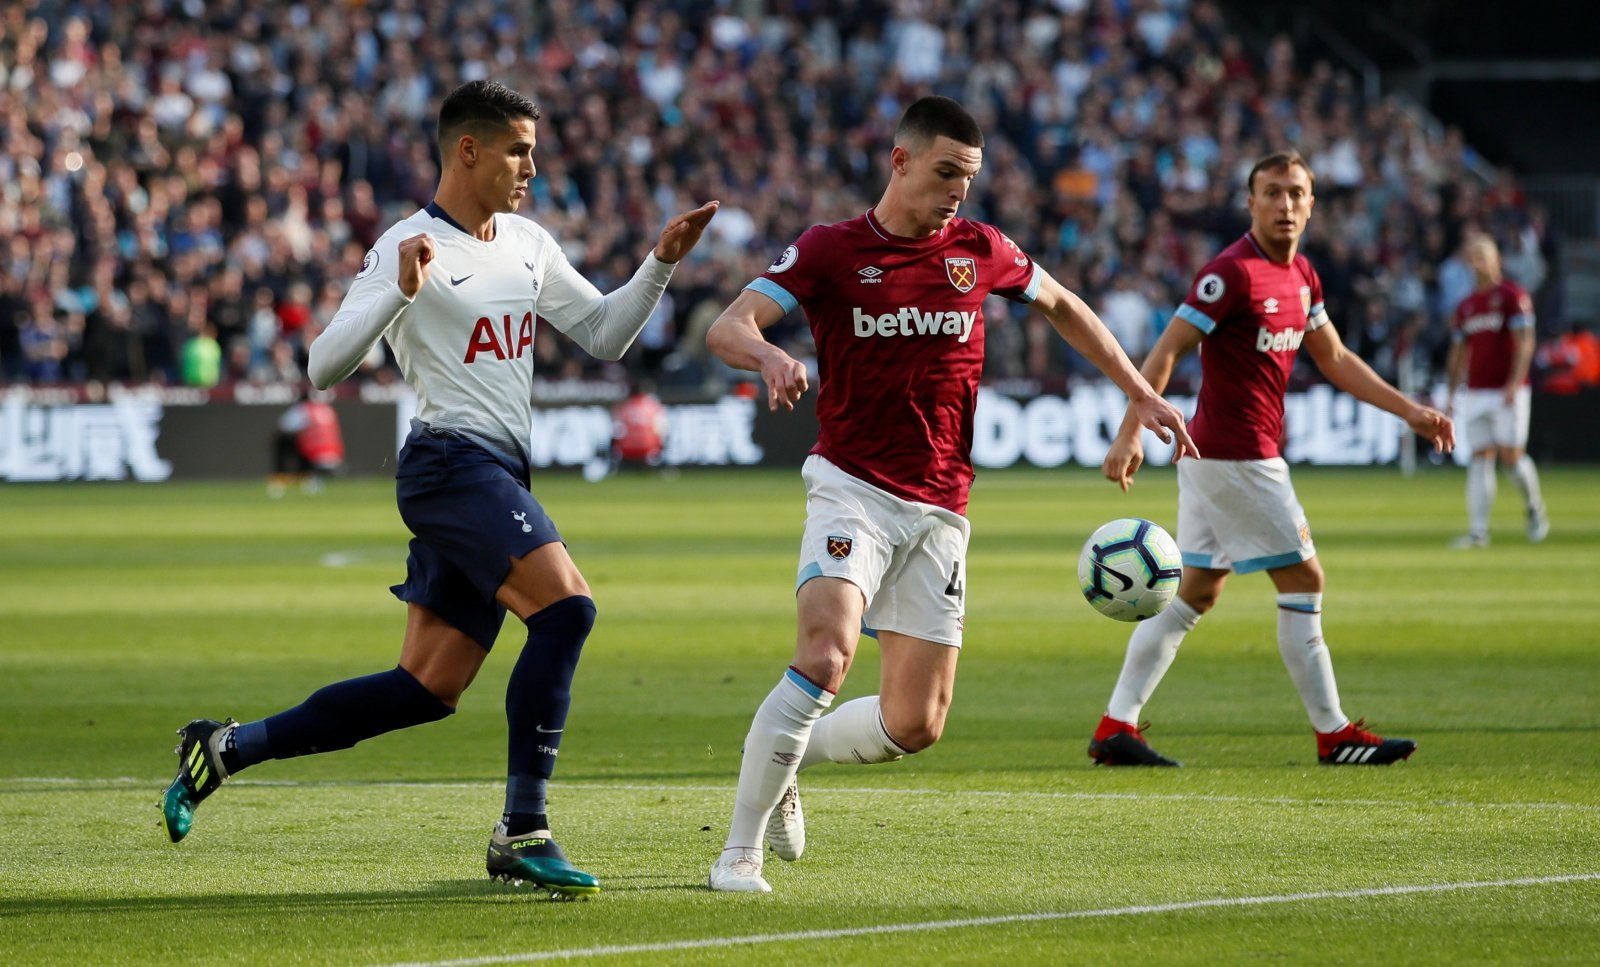 Declan Rice has Tottenham written all over him